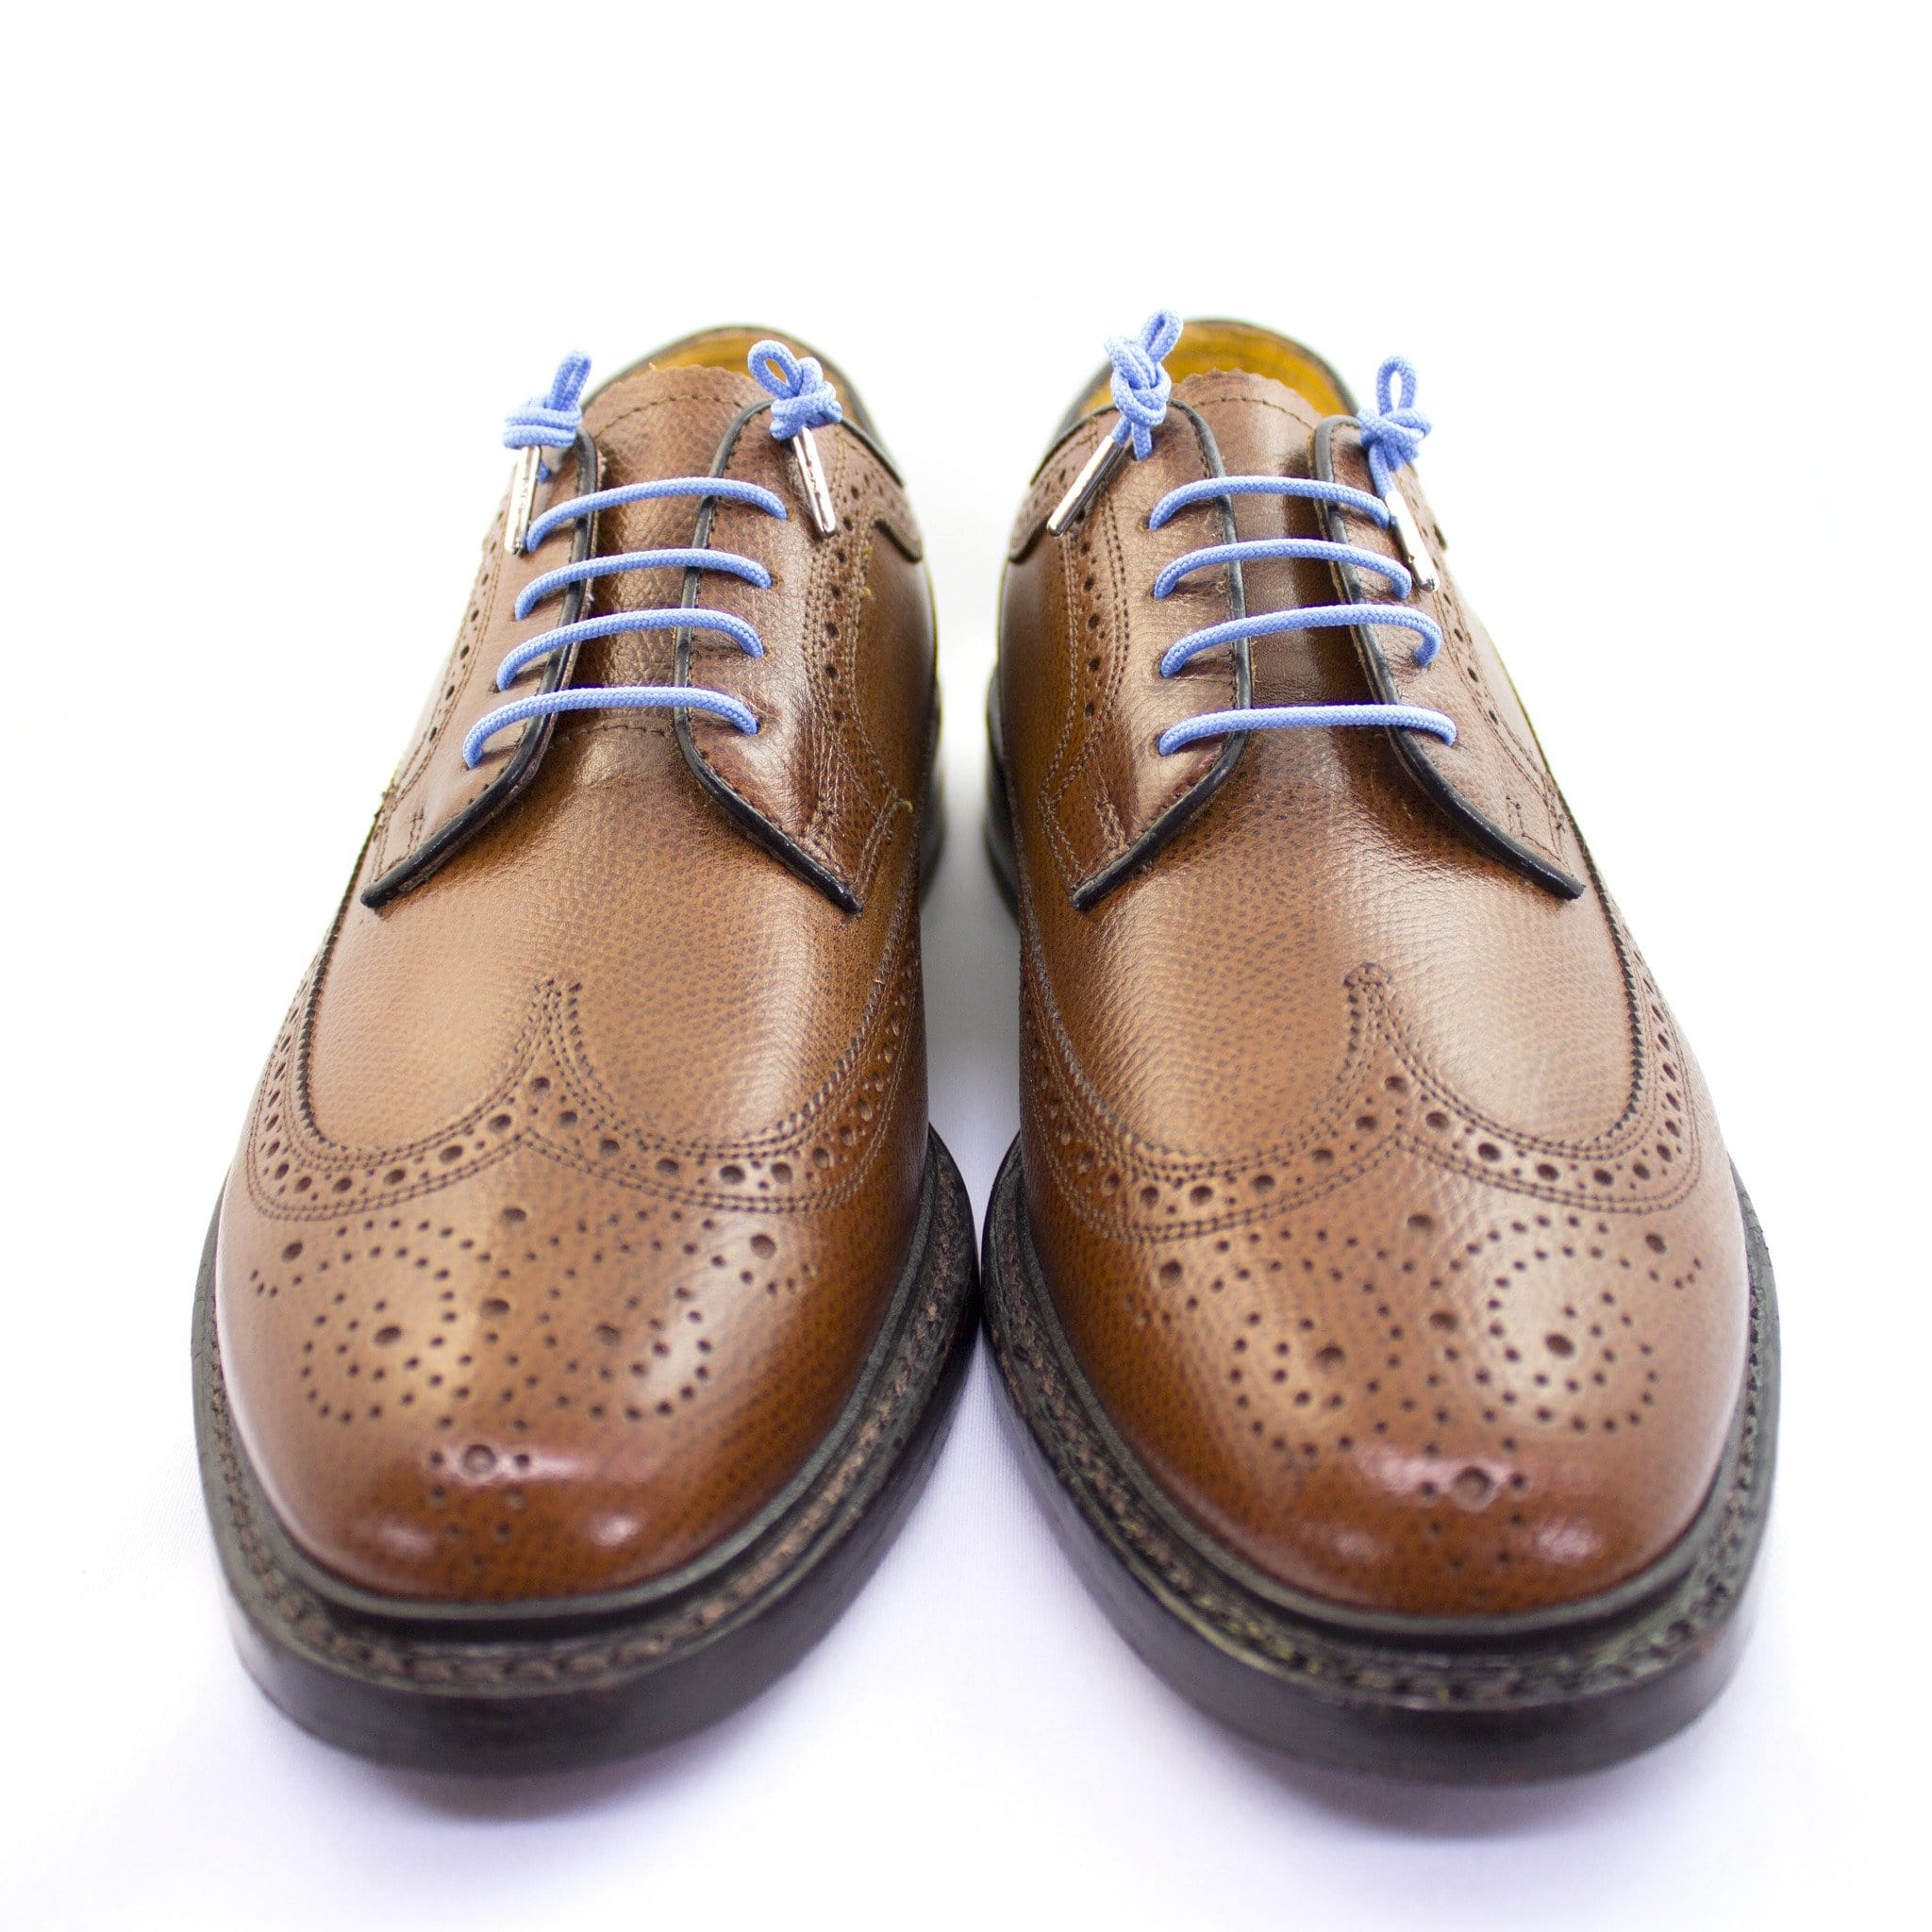 "Light blue laces for dress shoes, Length: 32""/81cm-Stolen Riches"